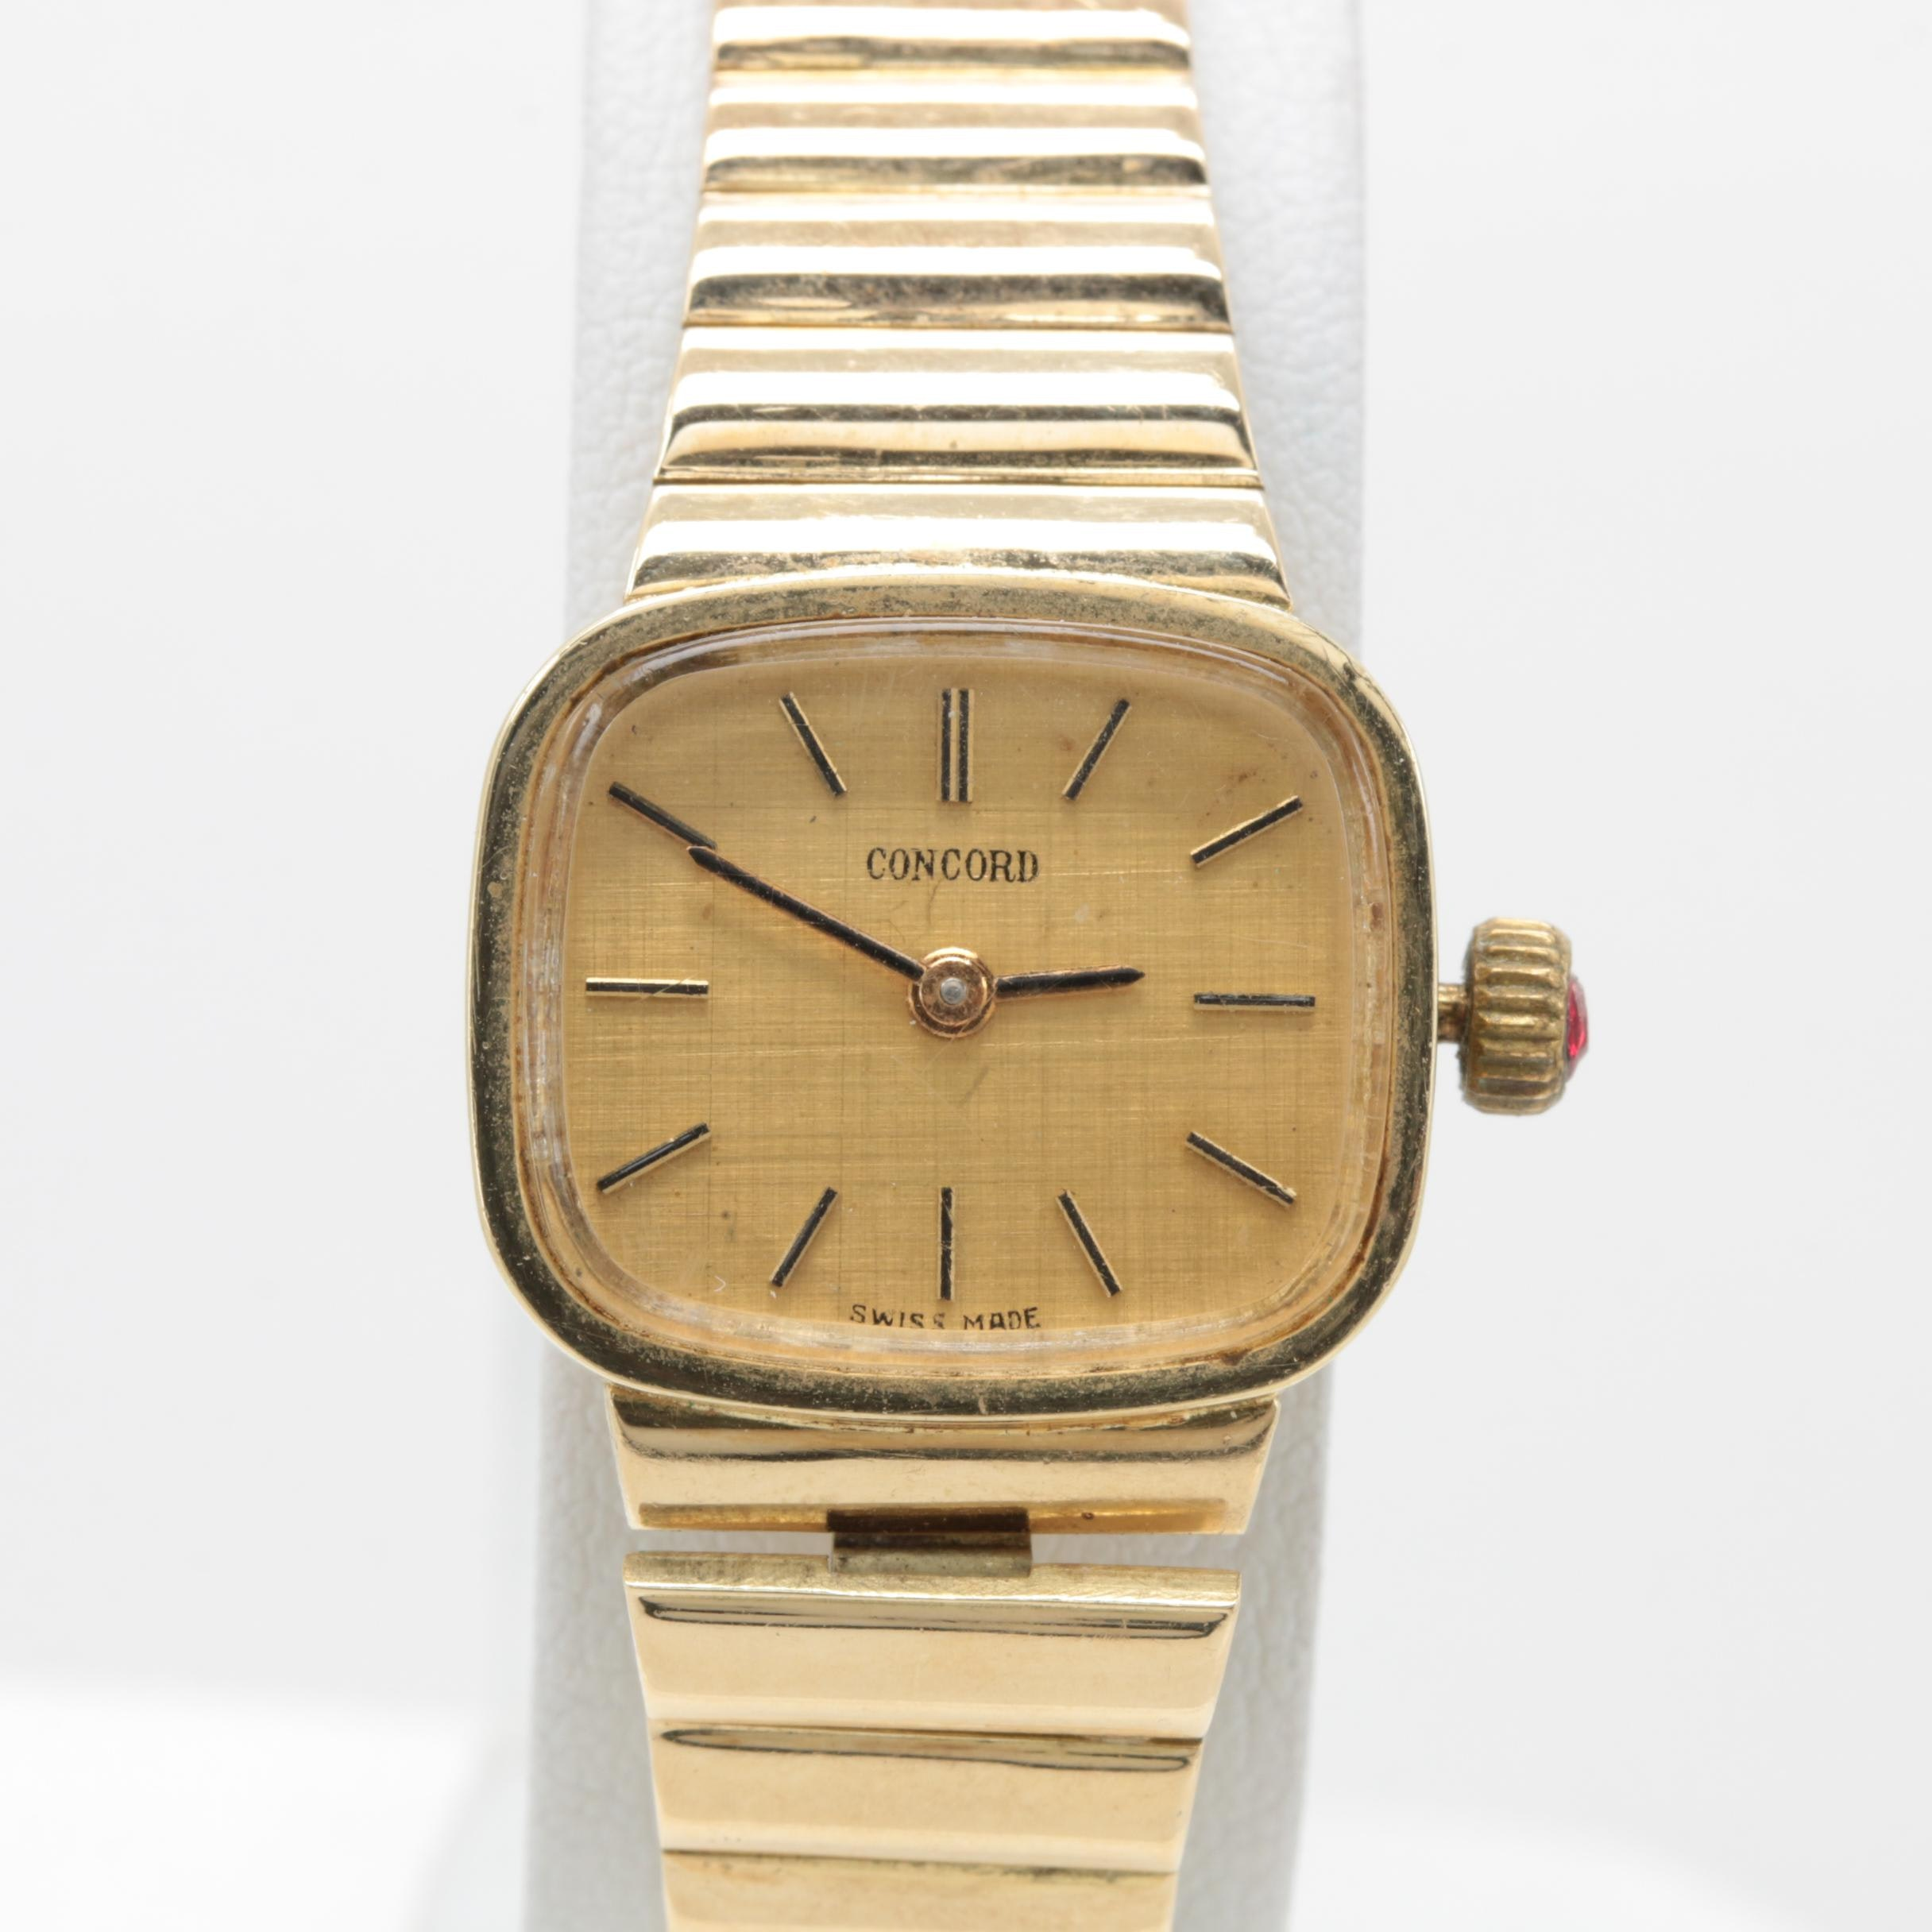 Concord 14K Yellow Gold Stem Wind Wristwatch